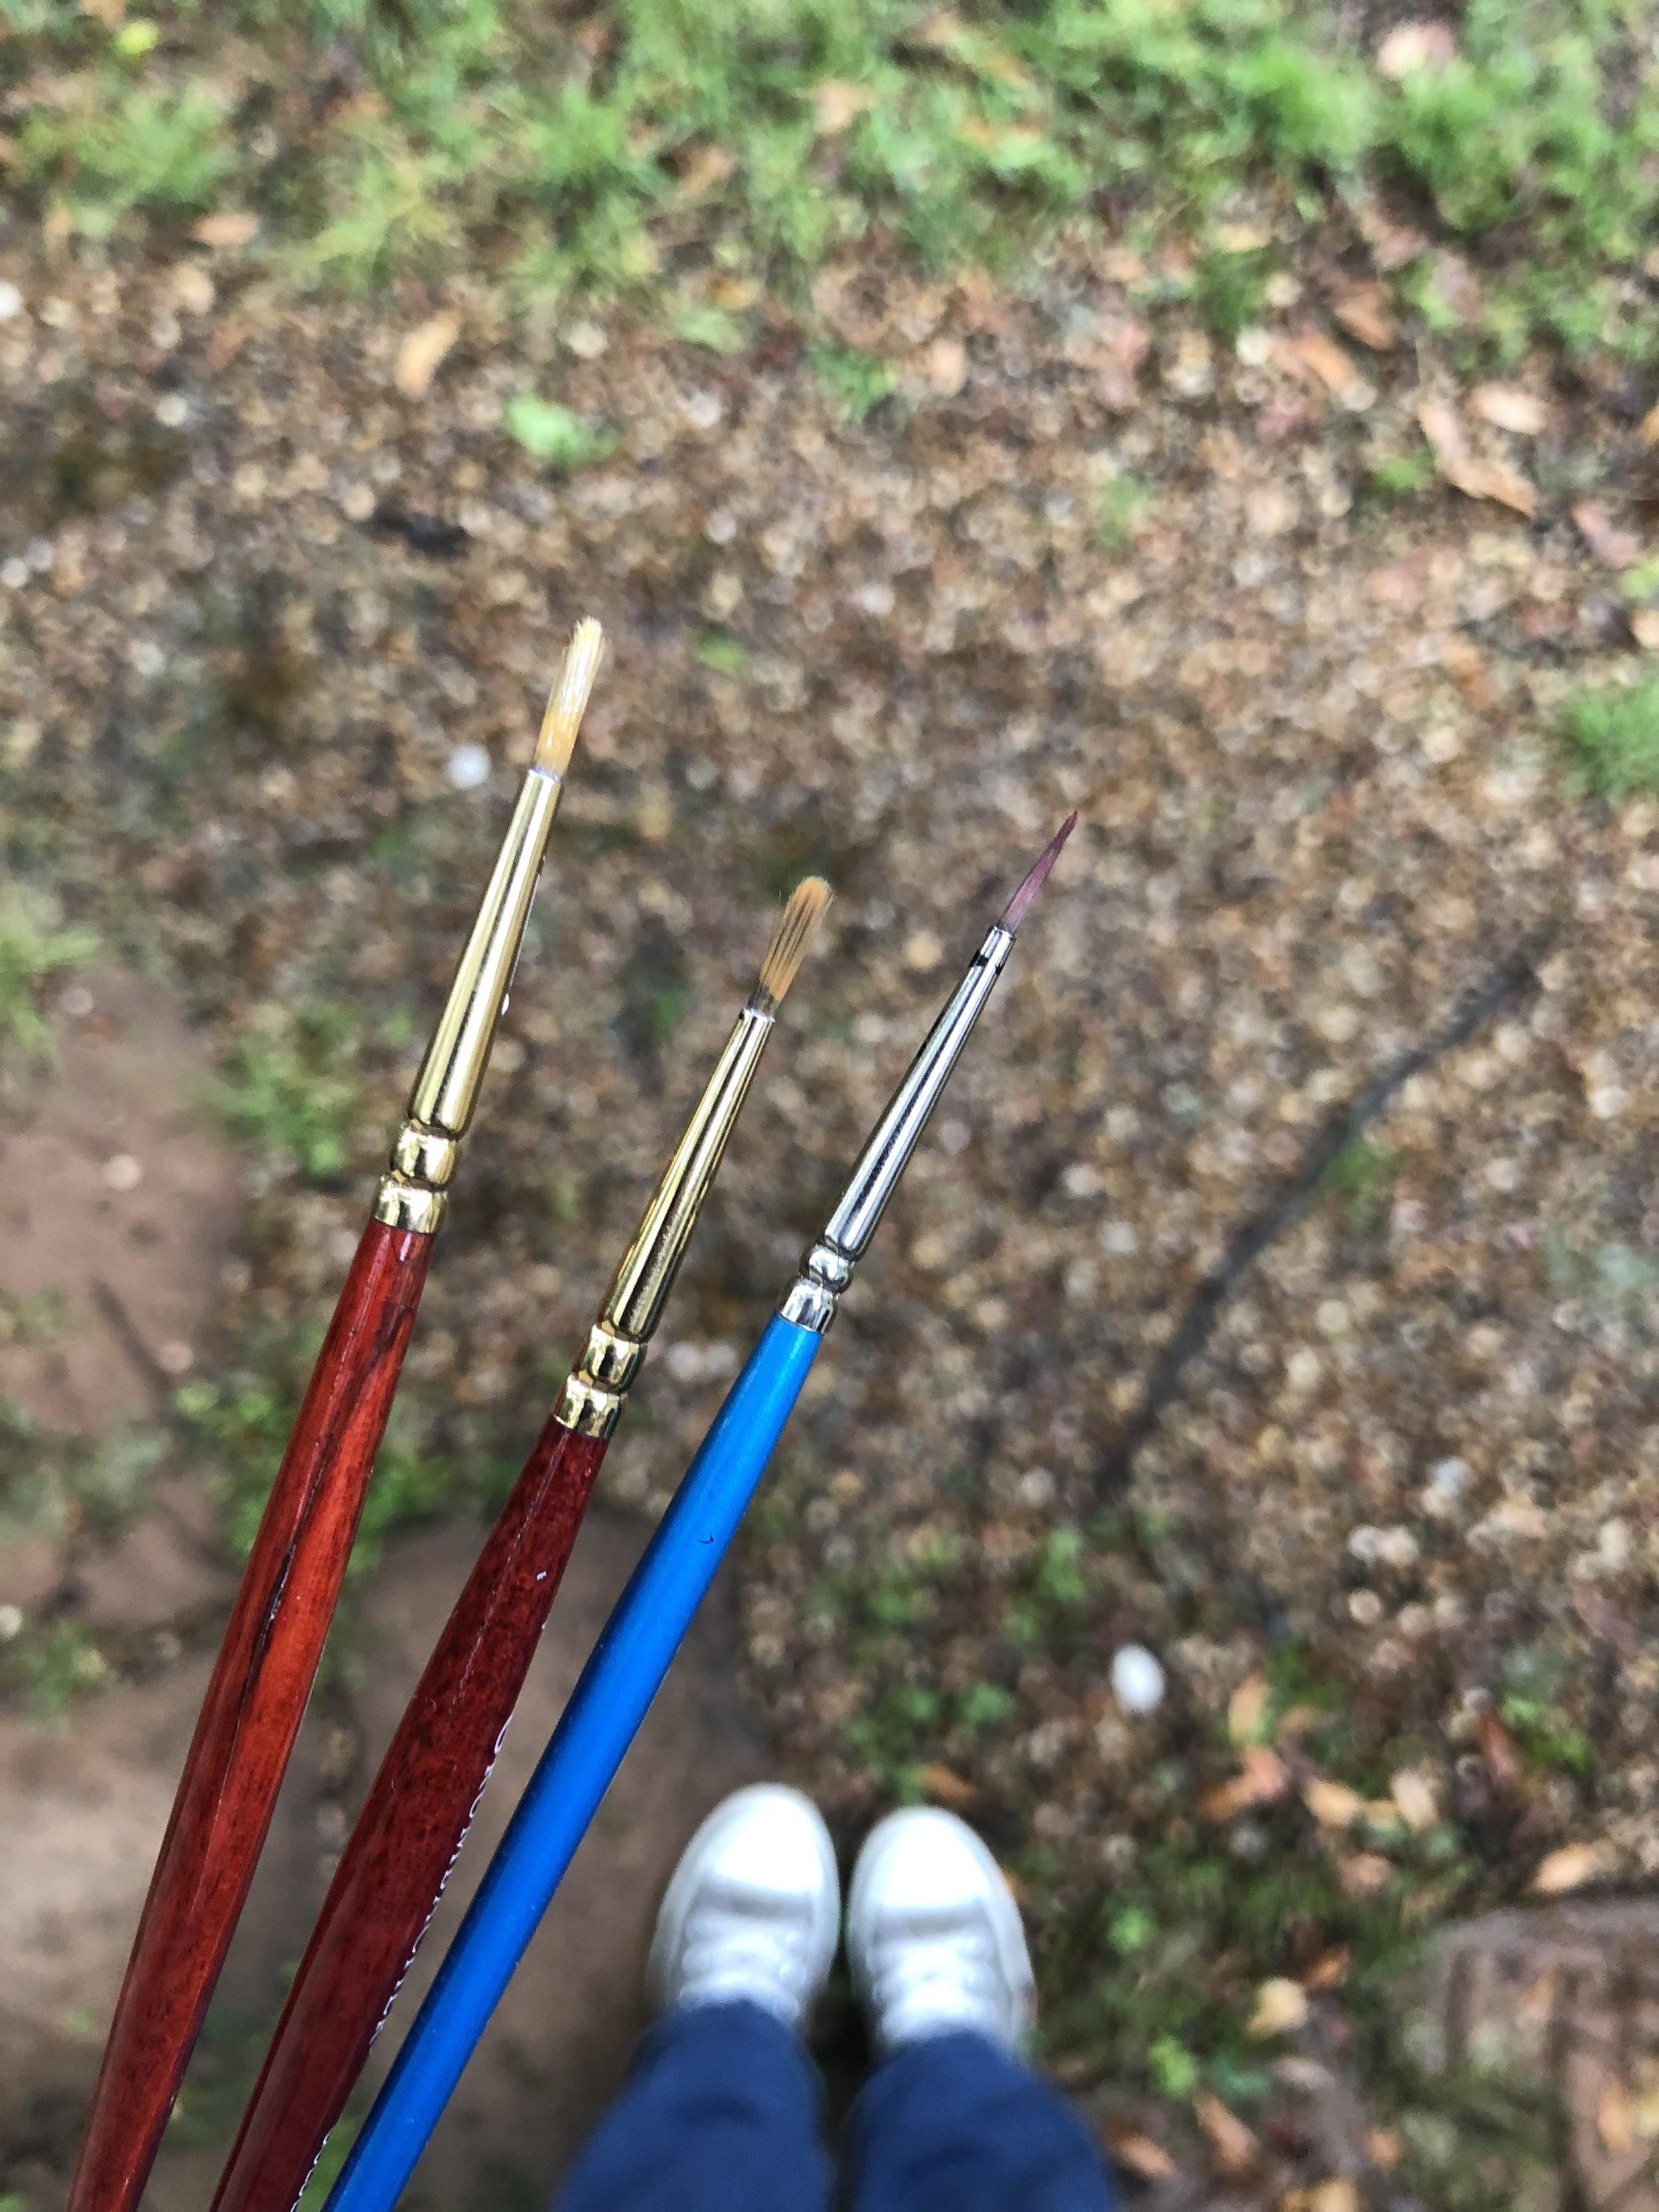 These are all round watercolor brushes that I've purchased at Michaels Arts & Crafts.